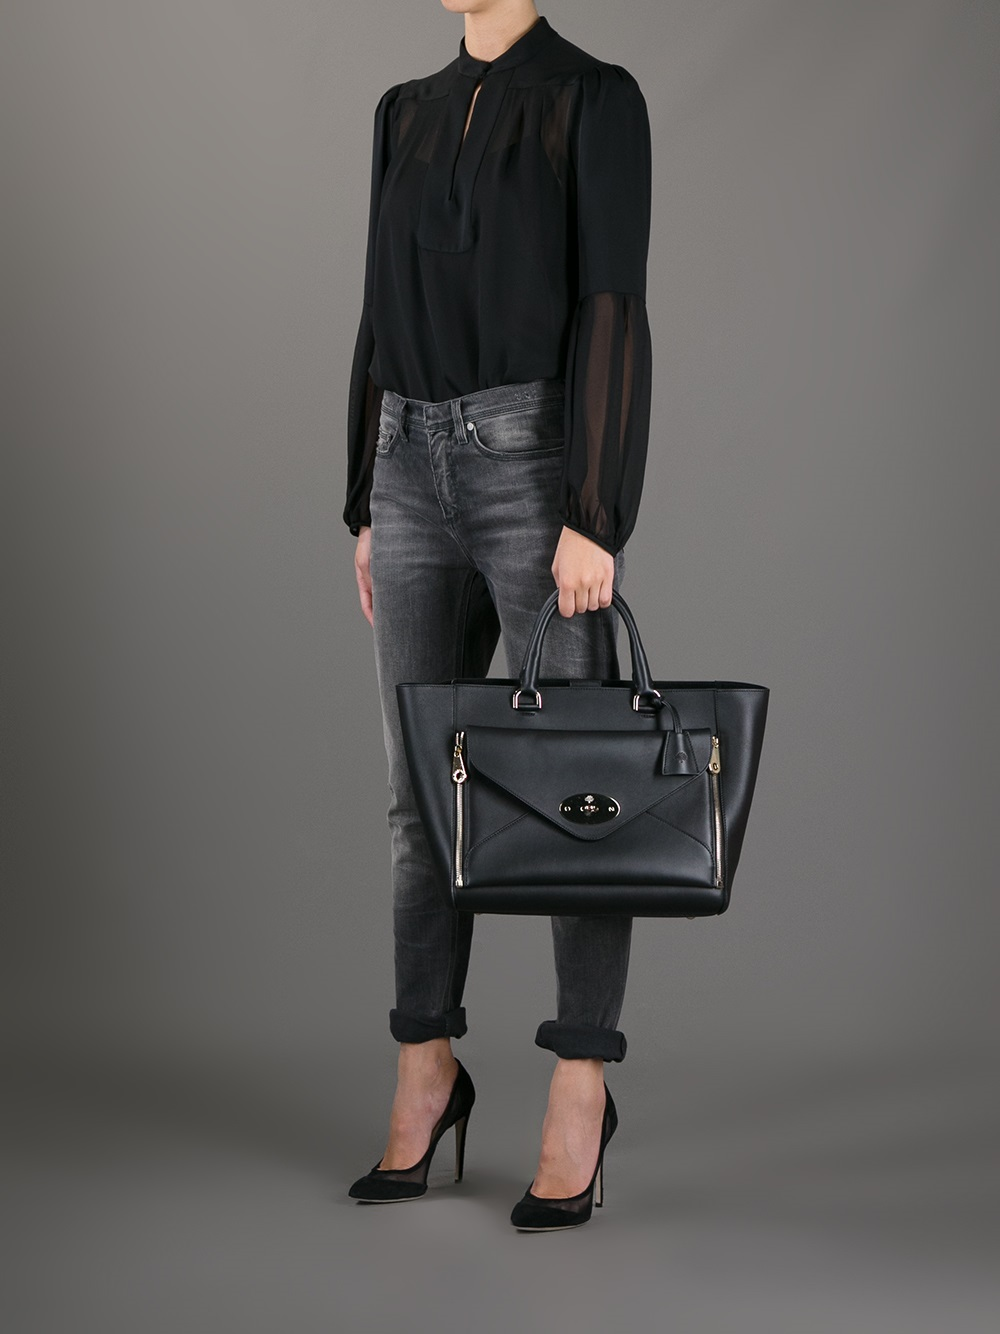 17f2d4d737 Lyst - Mulberry Willow Tote in Black